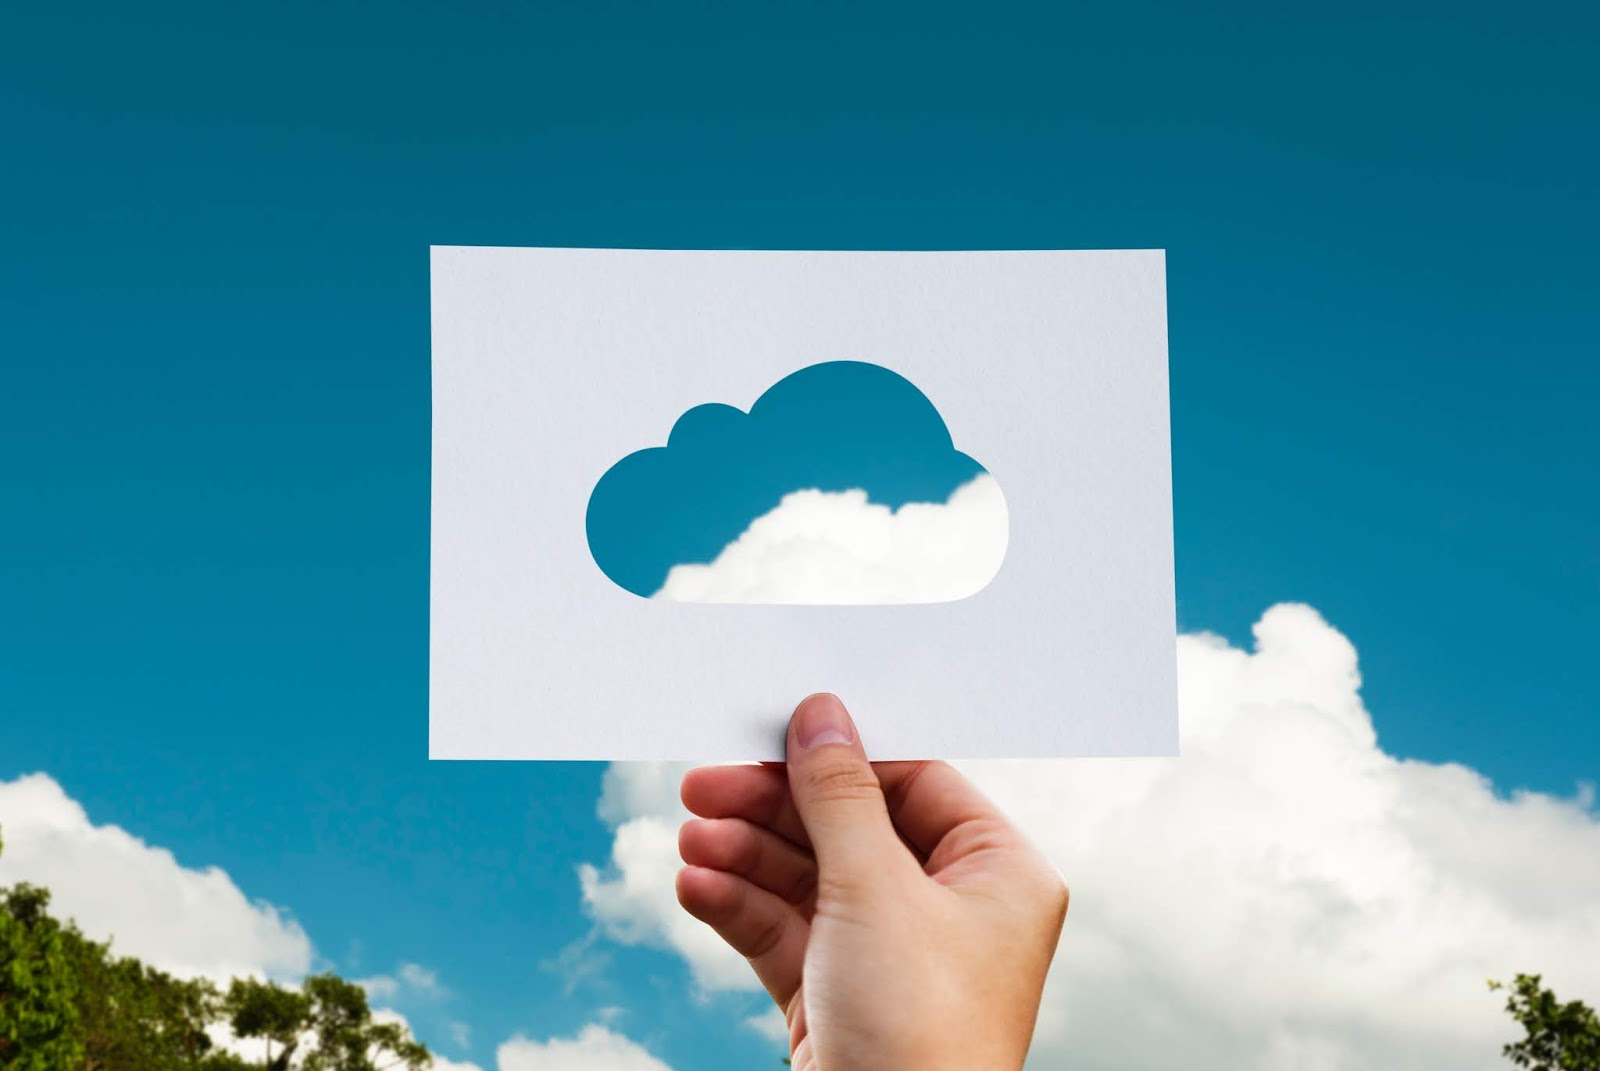 What Is Cloud Computting?